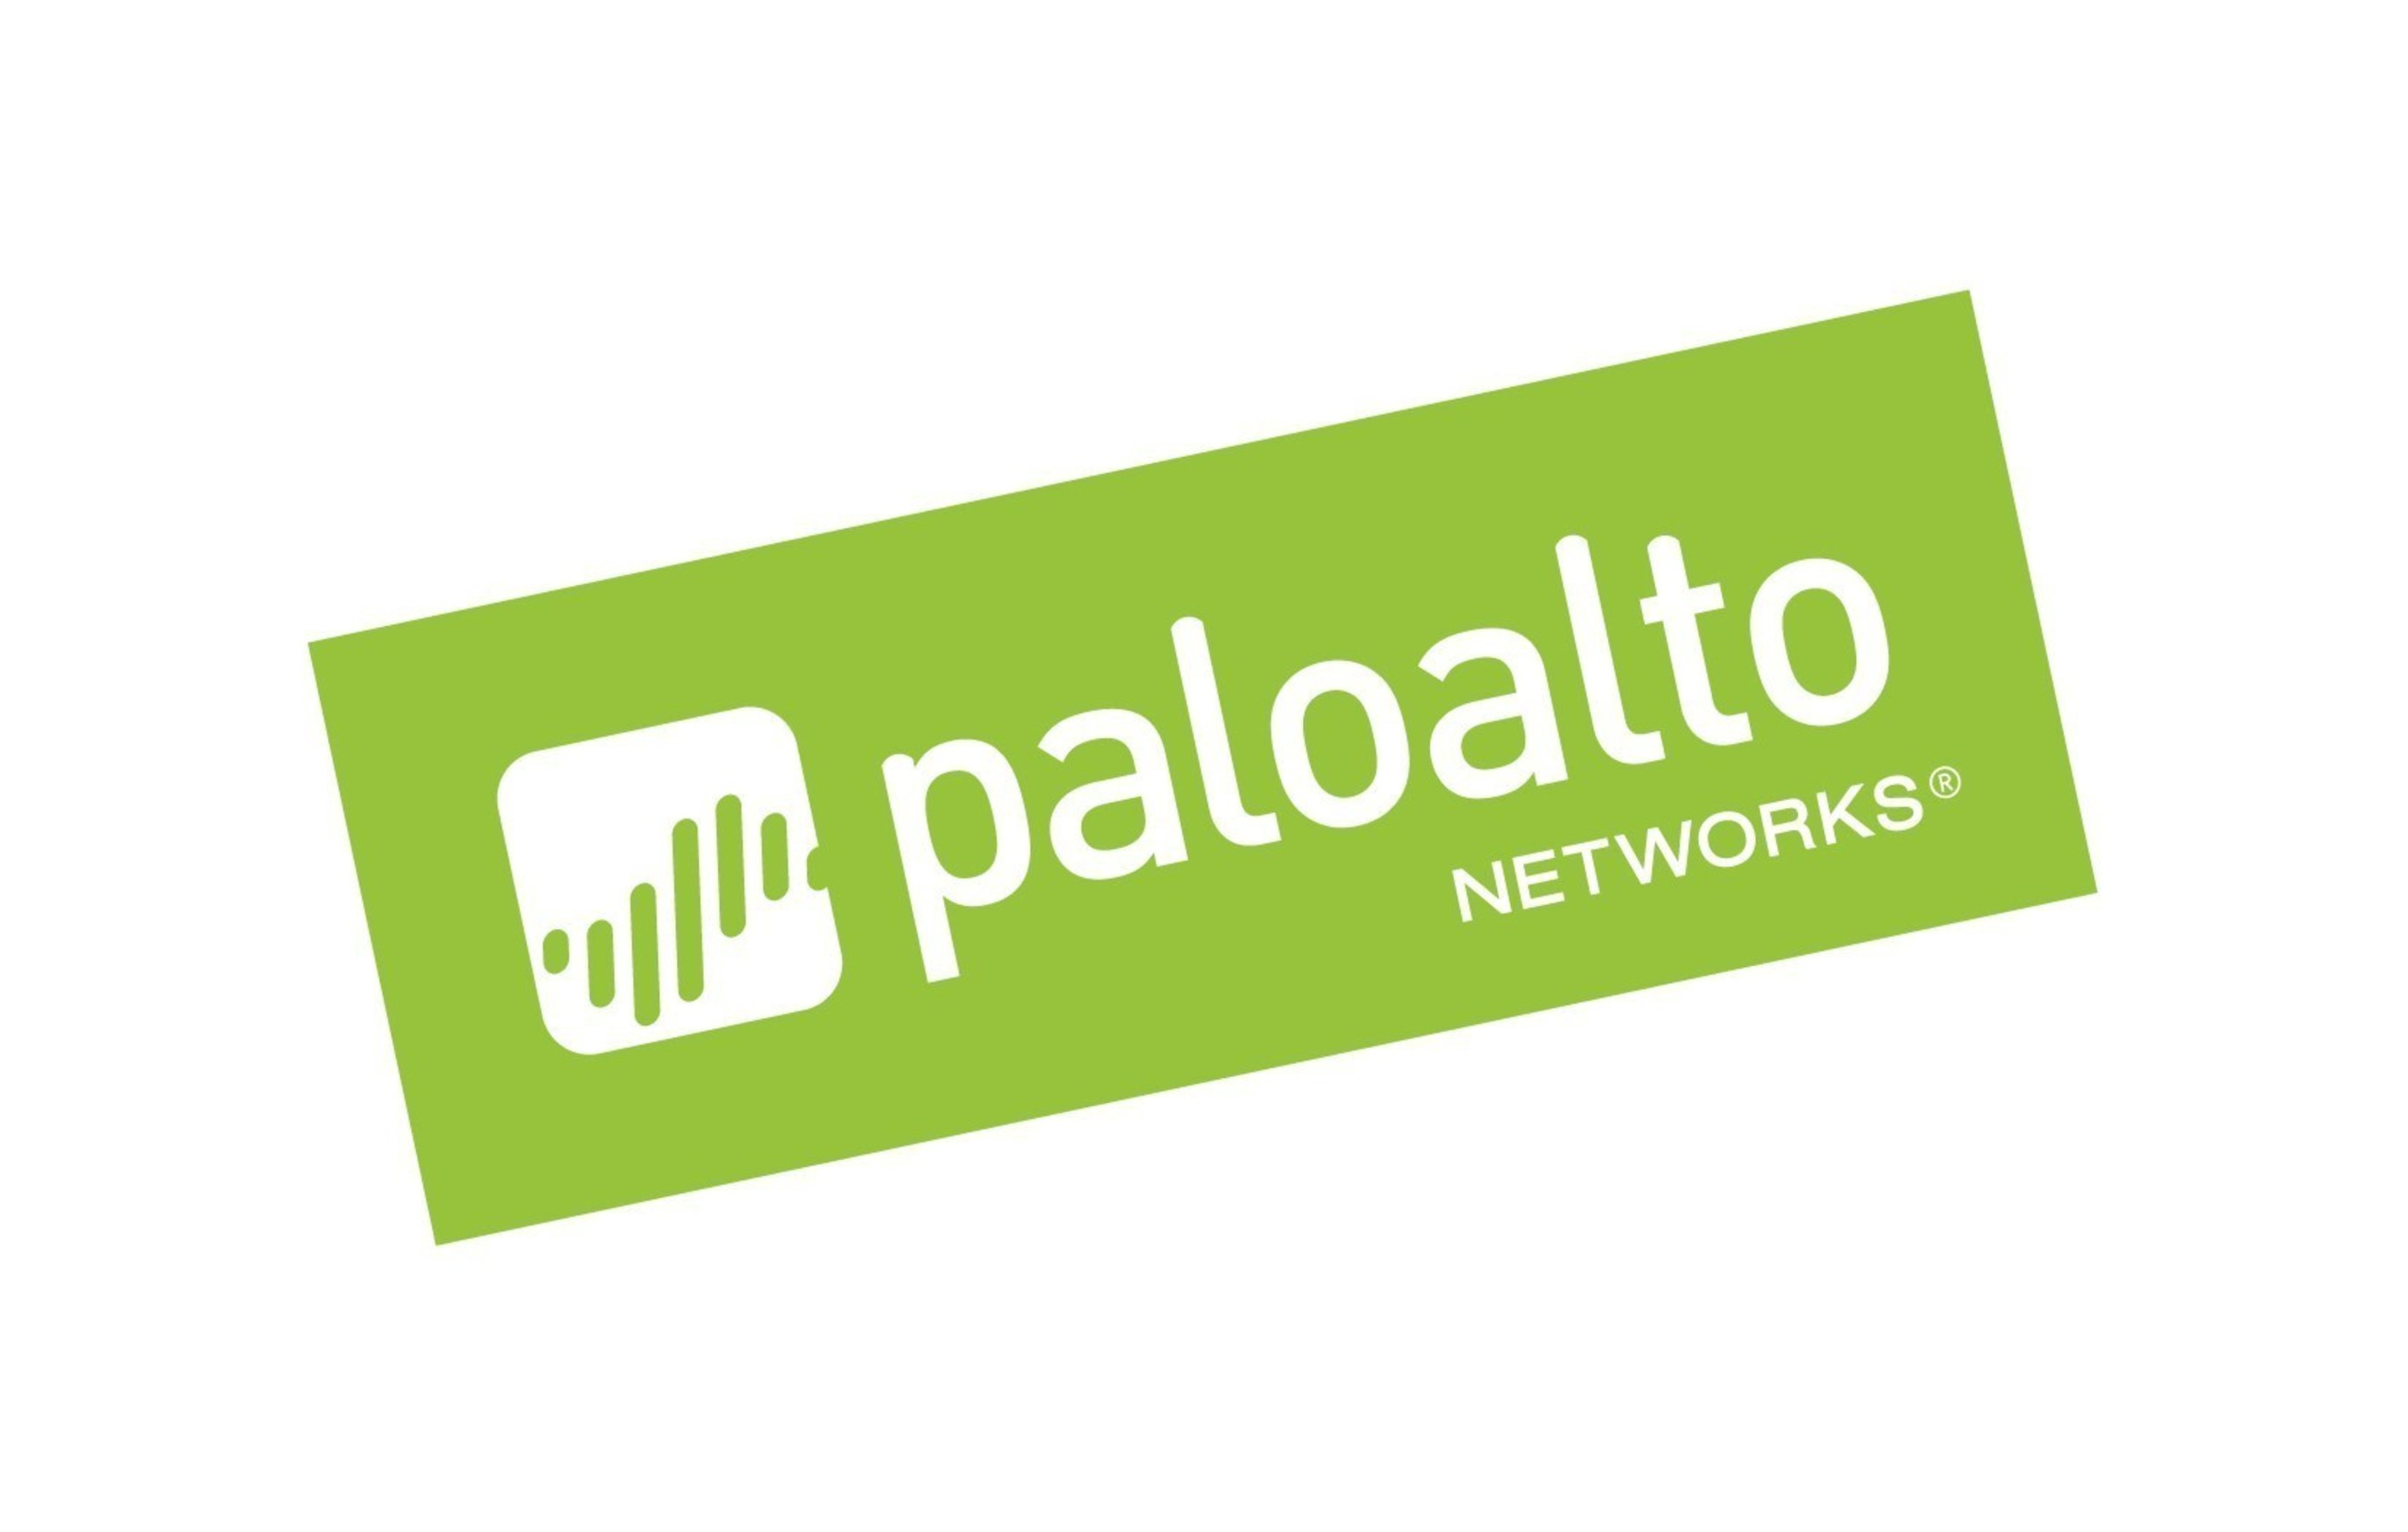 Palo Alto Networks and Singtel Team Up to Help Organizations Prevent Cyber Breaches in Asia Pacific with New Managed Security Service